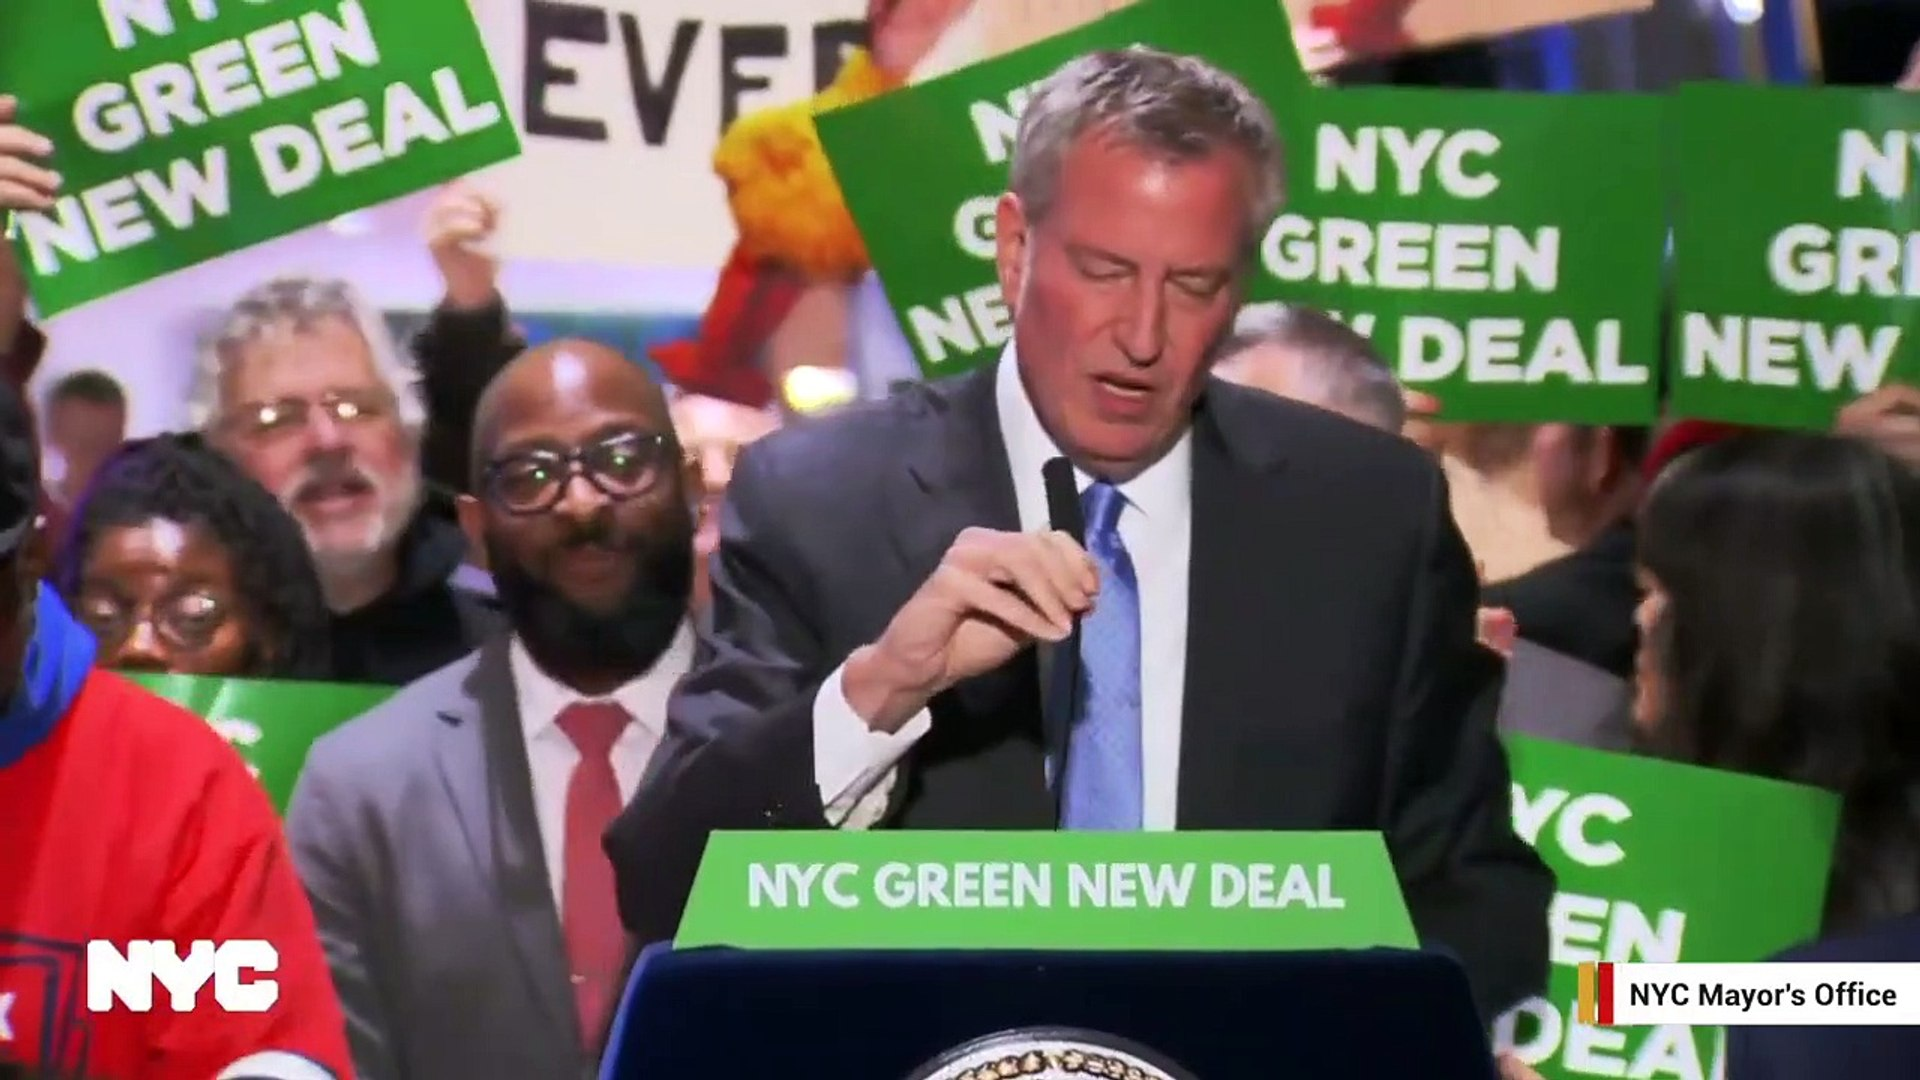 Watch: NYC Mayor Bill de Blasio's Press Conference At Trump Tower Disrupted By Loud Music And T